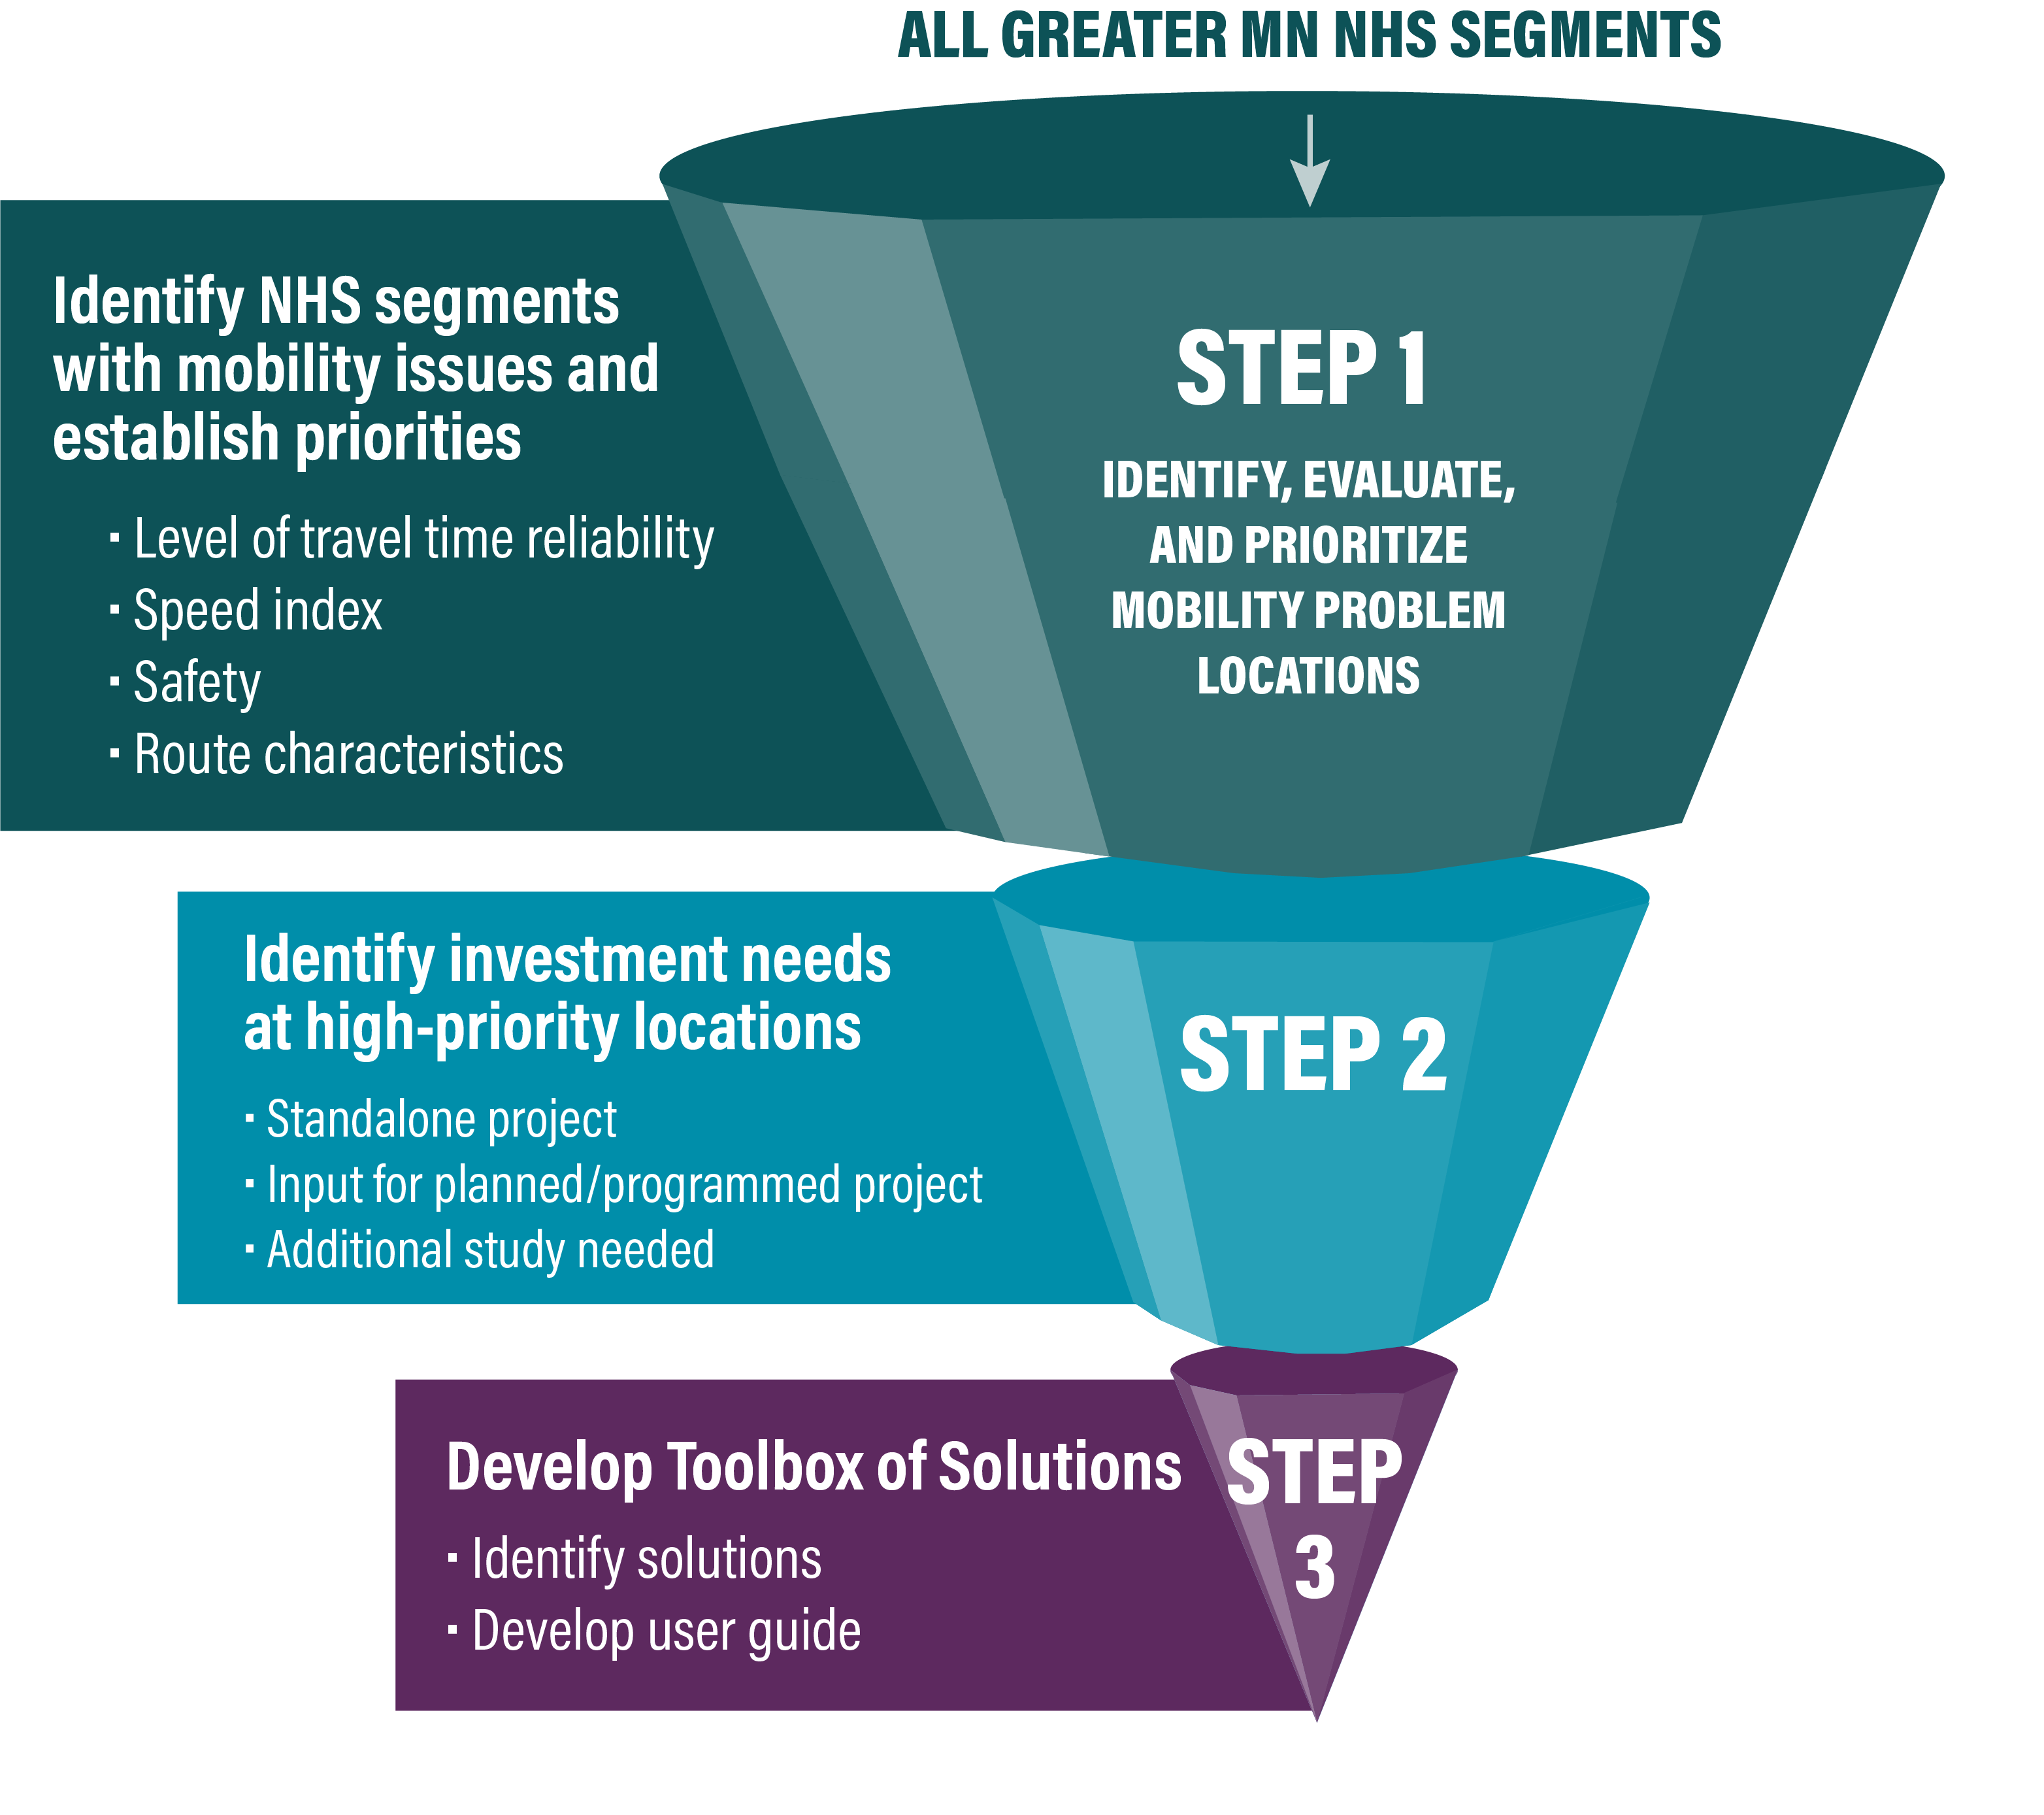 Graphic of three funnels. The largest funnel, on the top, represents identifying and evaluating mobility problem locations. The second, smaller funner, underneath the first, represents identifying investment needs at high-priority locations. Finally, the third and smallest funnel represents developing a toolbox of solutions.